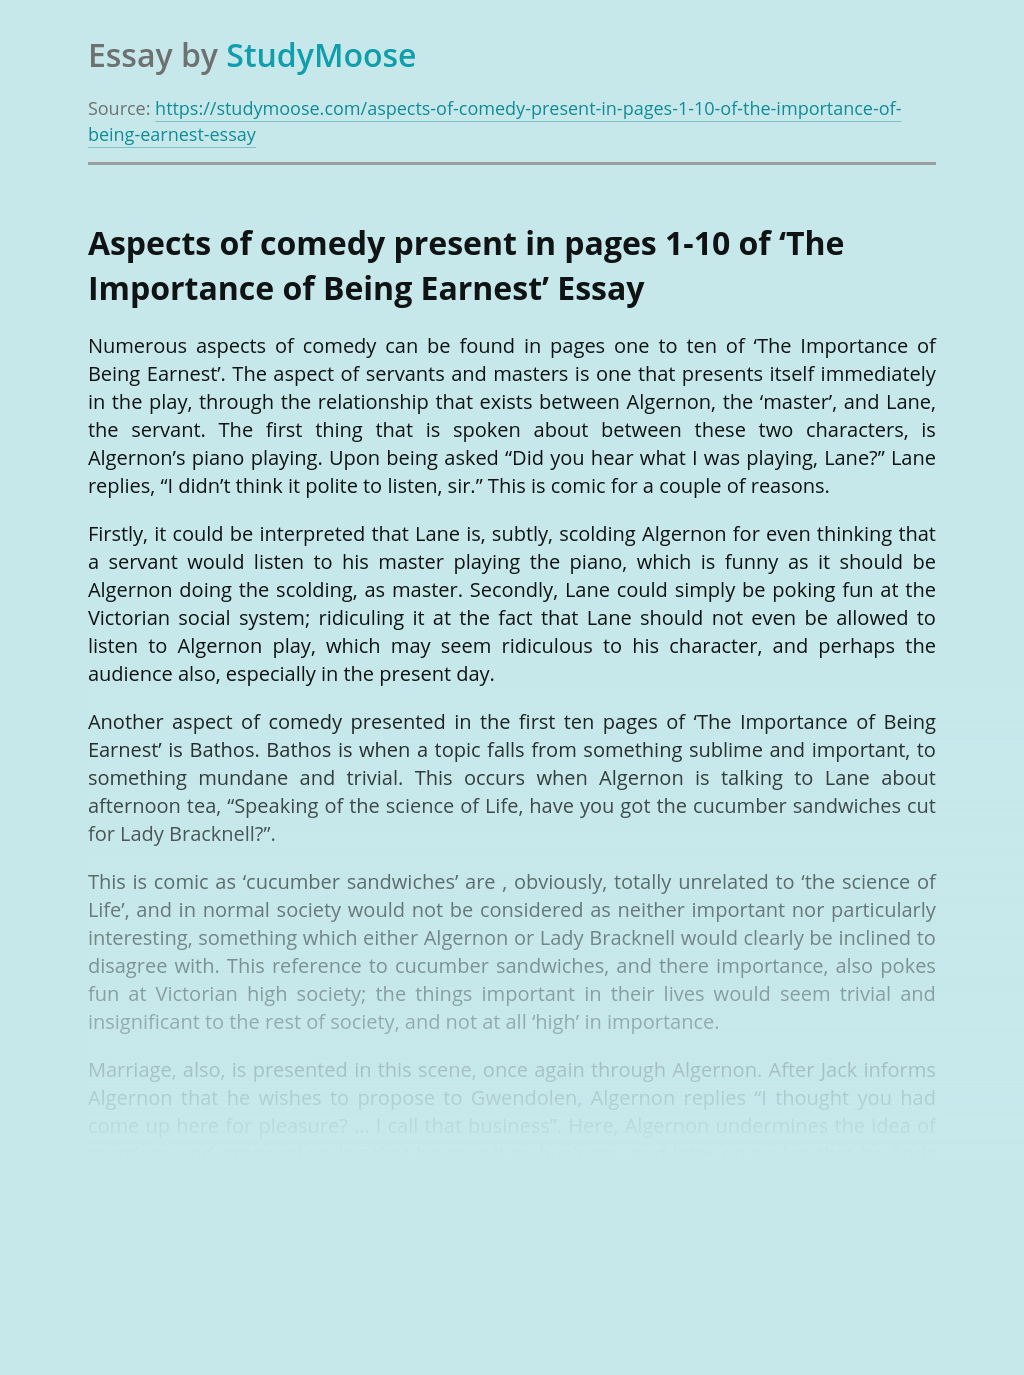 Aspects of comedy present in pages 1-10 of 'The Importance of Being Earnest'